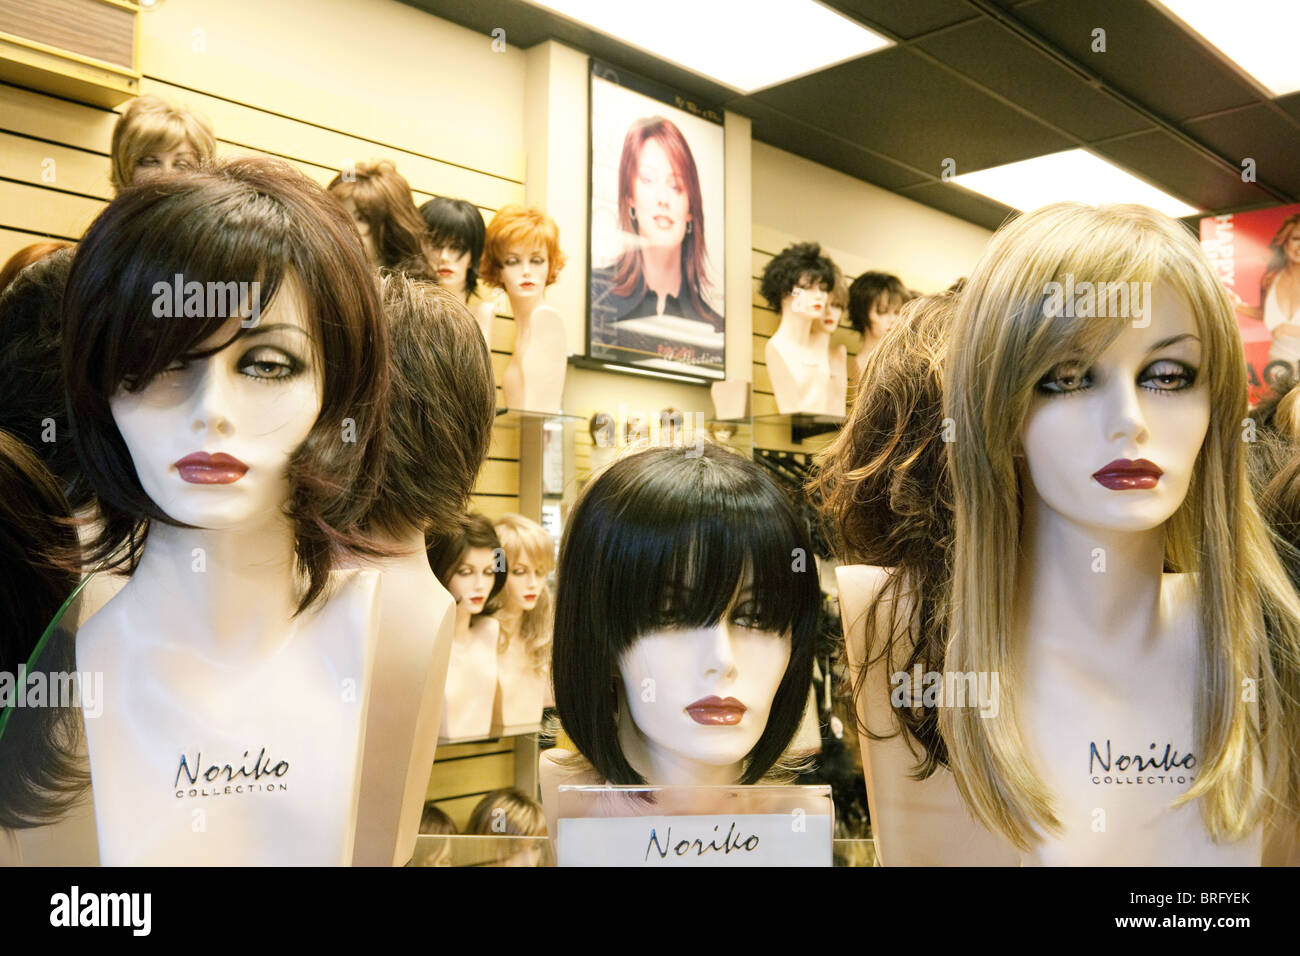 Les mannequins portant des perruques perruque Norika en magasin, centre commercial de Las Vegas, Las Vegas NEVADA Photo Stock